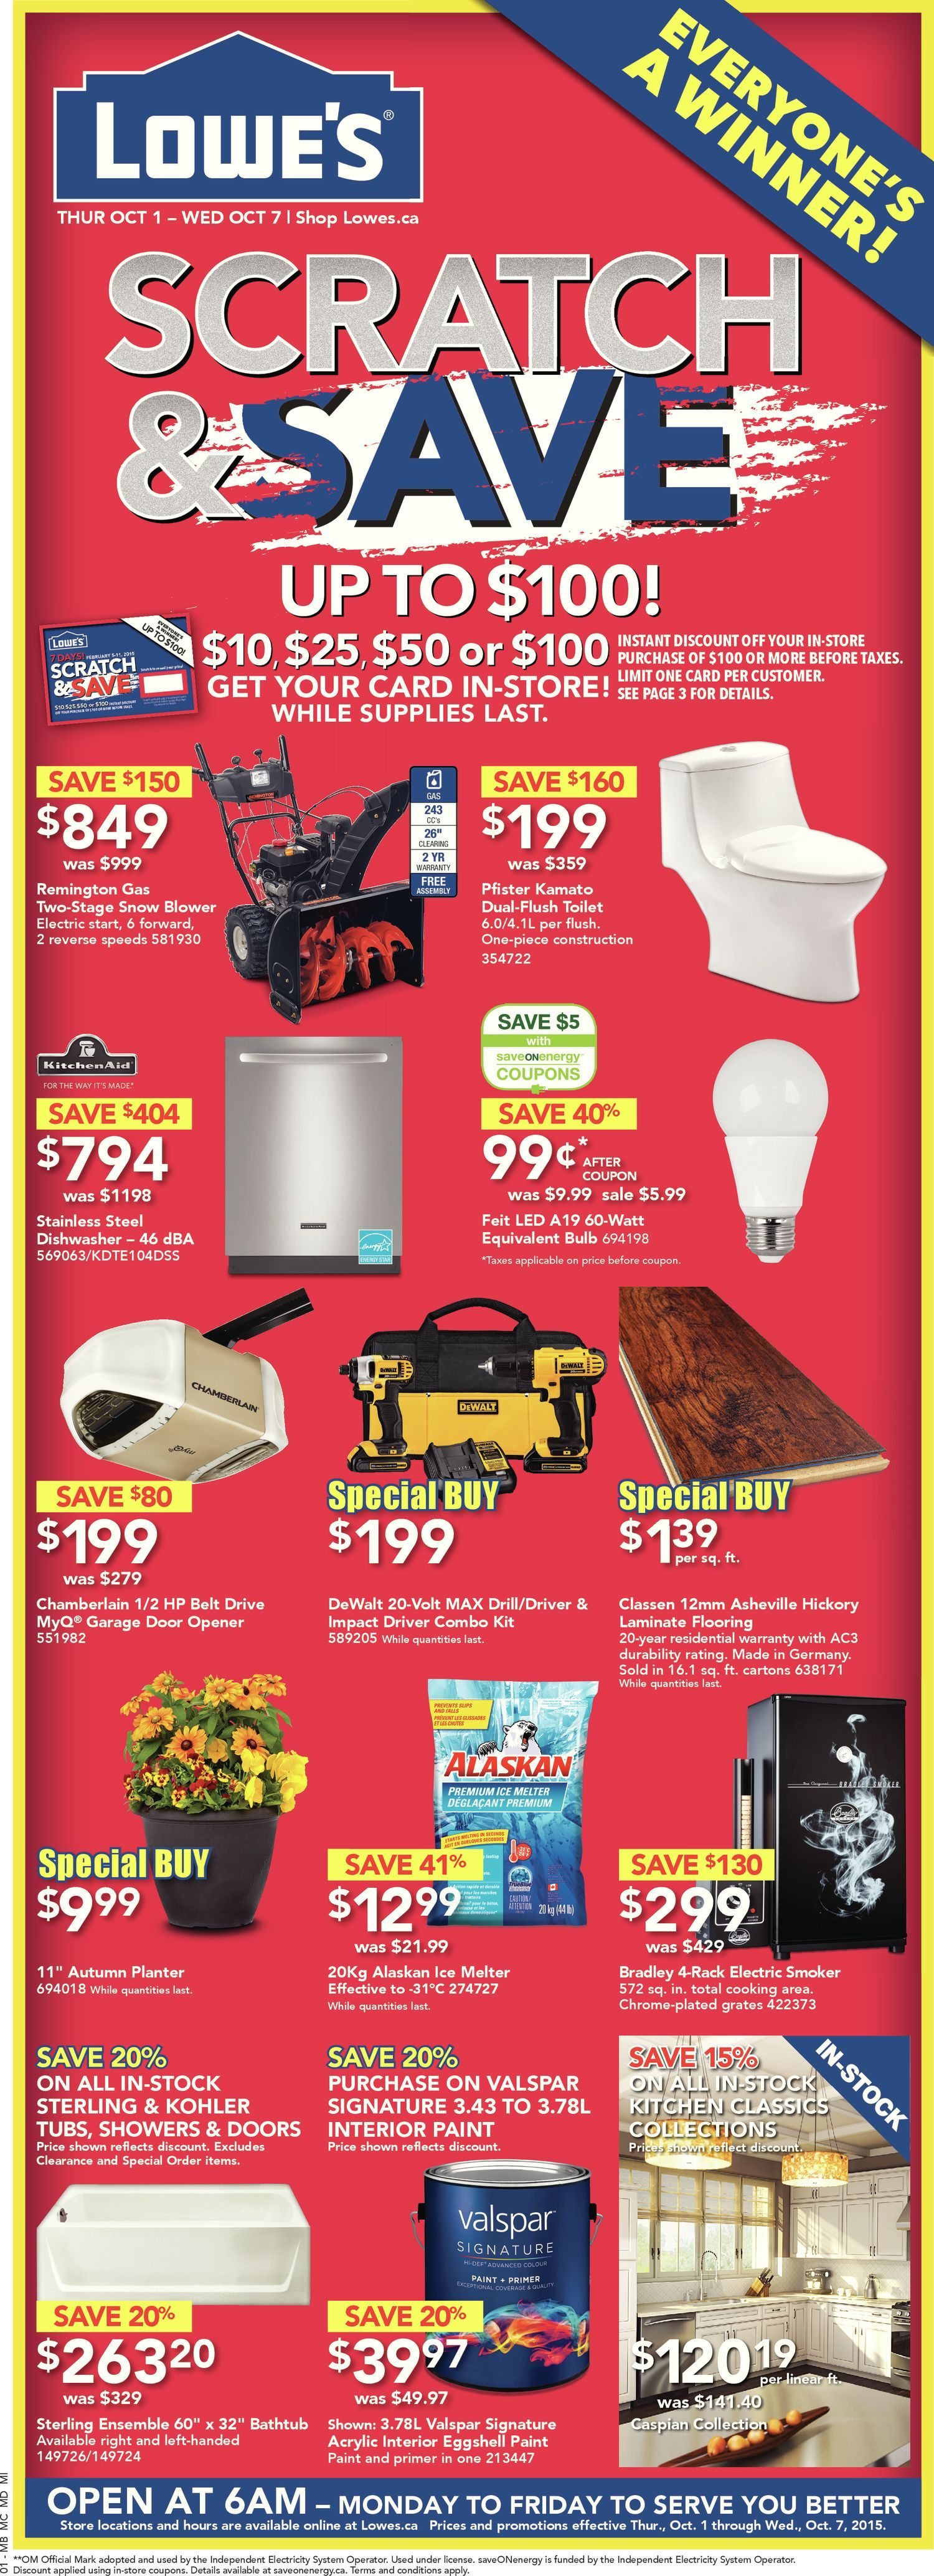 Bathroom Renovation Cost Redflagdeals lowe's weekly flyer - weekly - scratch & save - oct 1 – 7